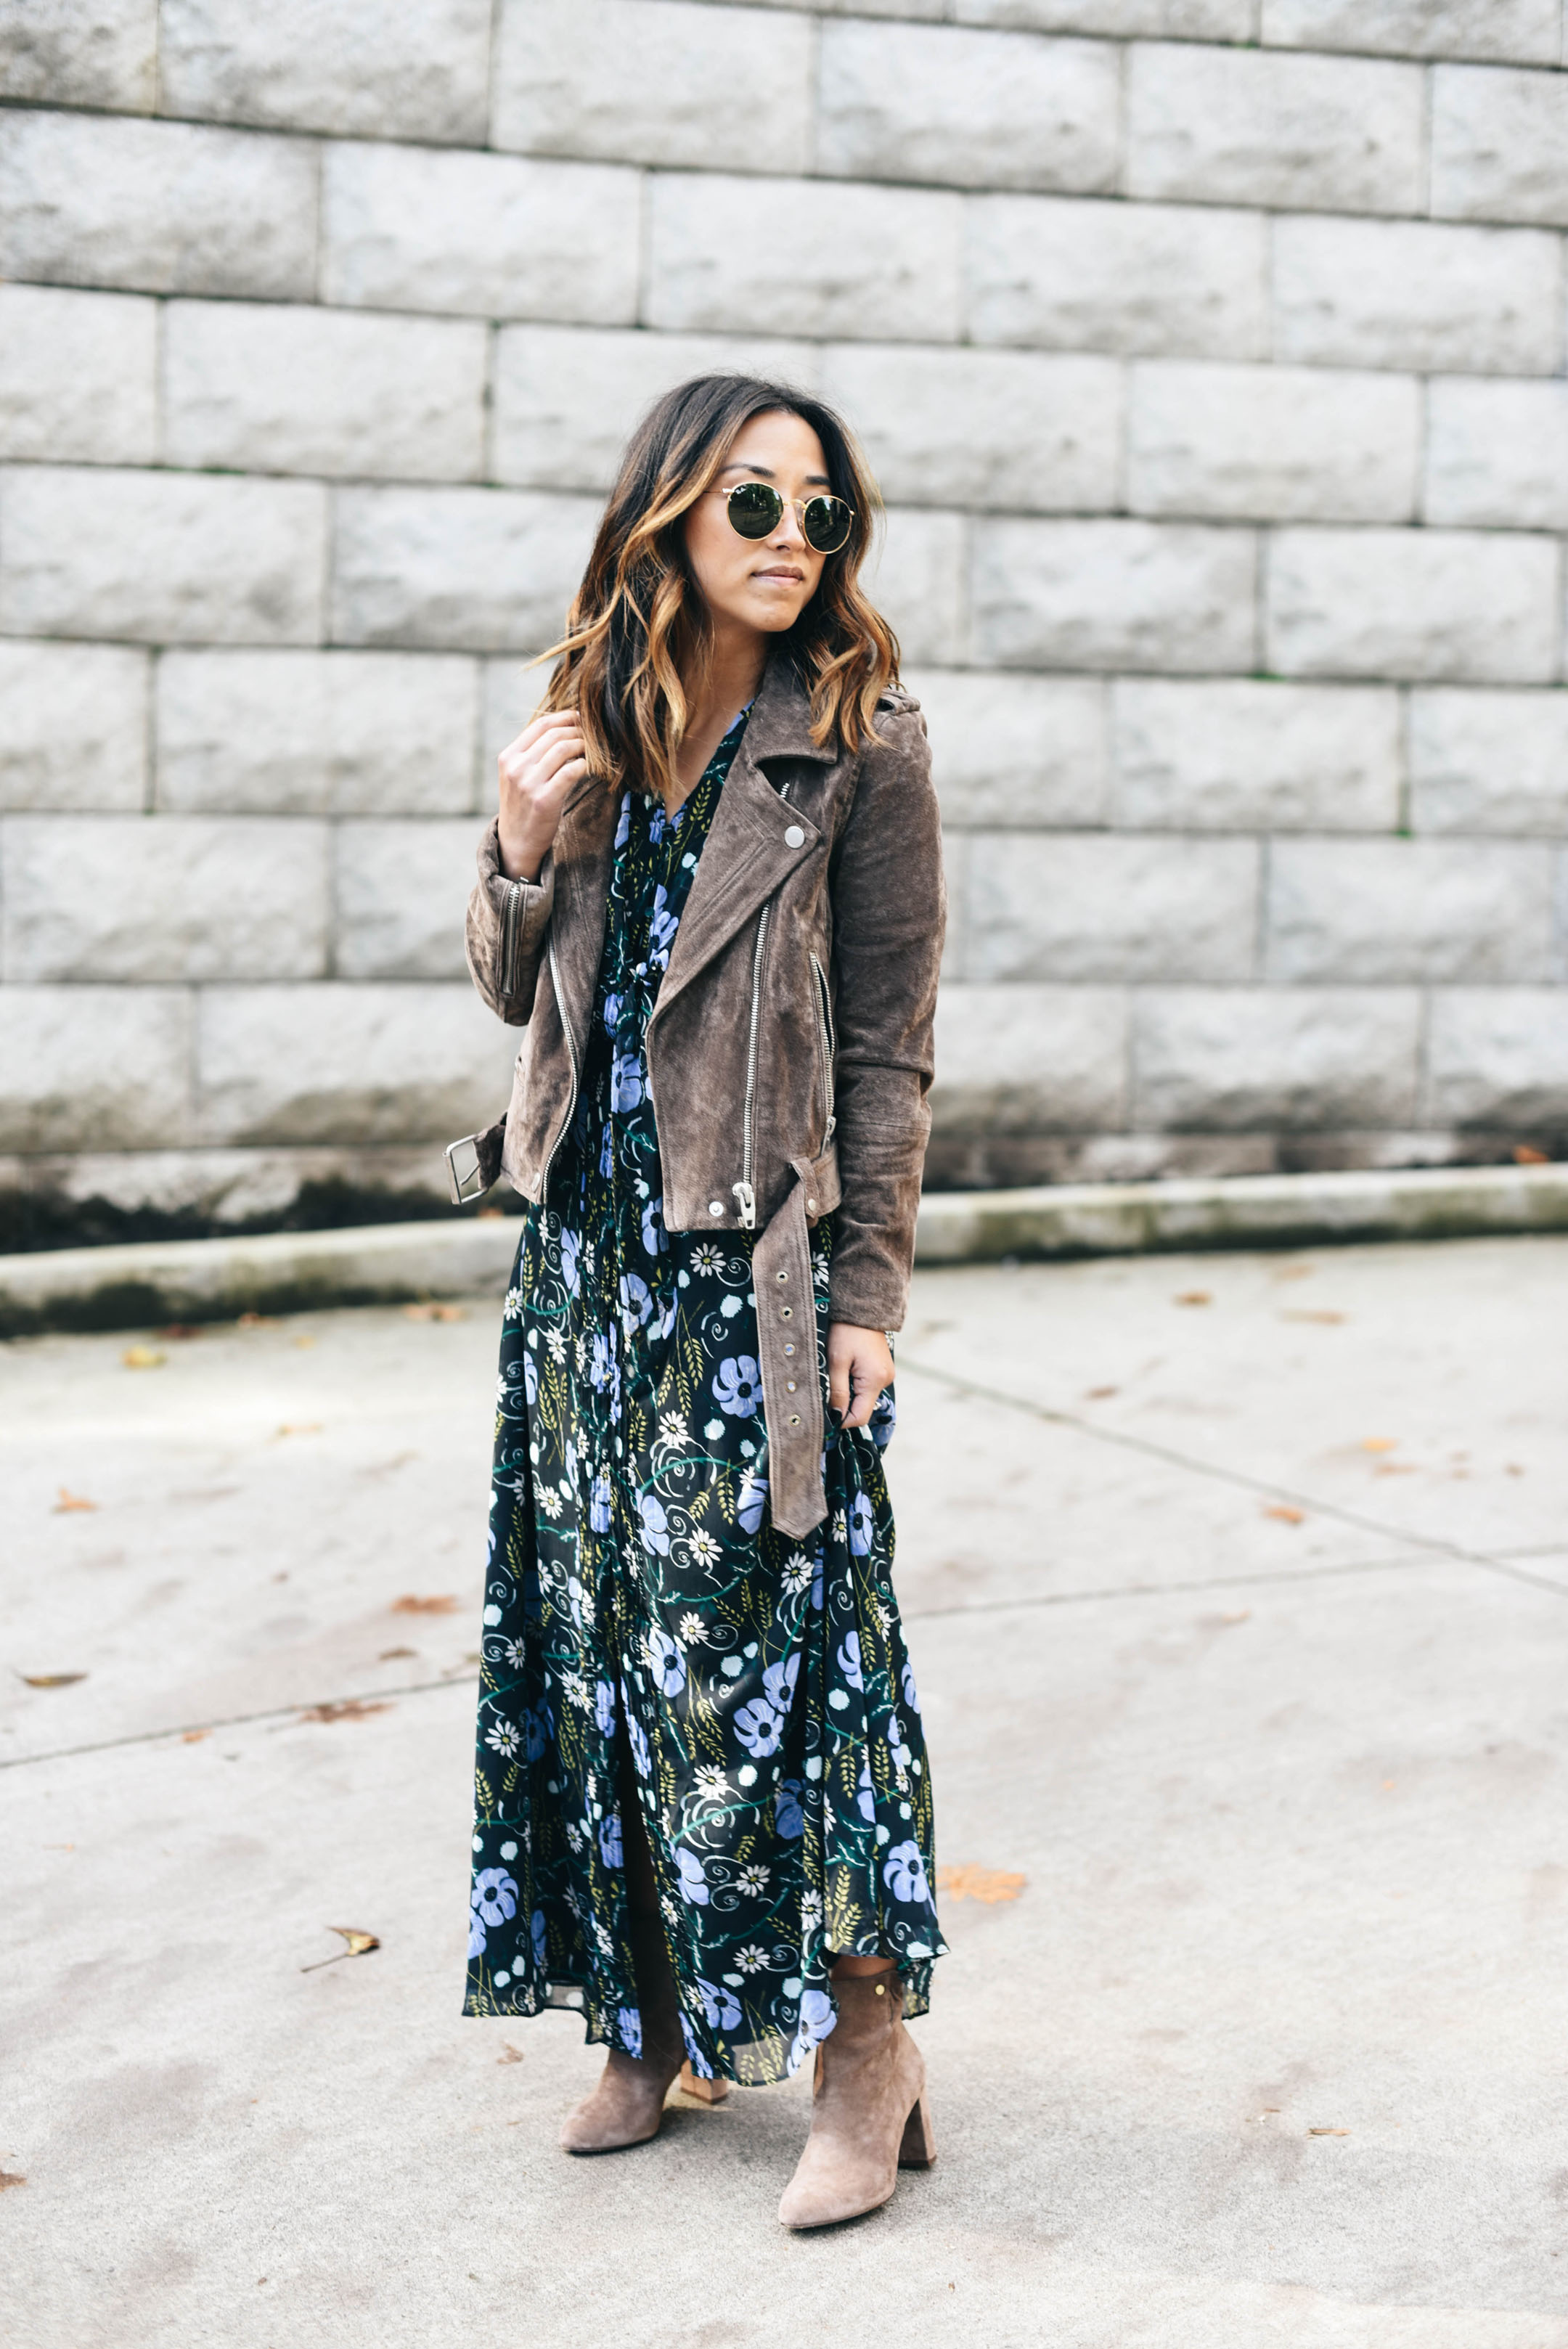 How to wear a floral dress in the fall